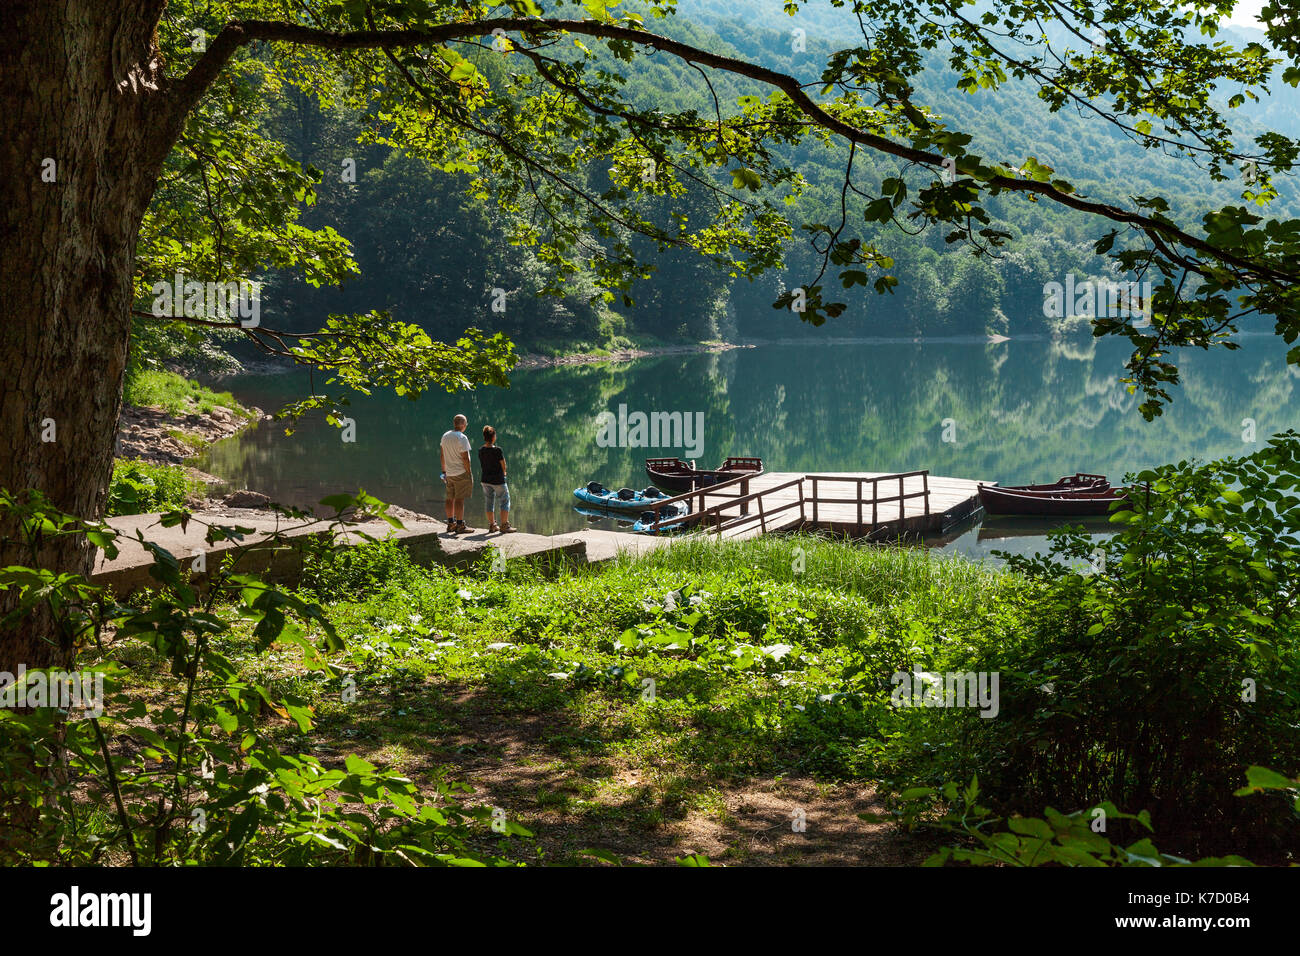 As i mentioned in the first feature, there is a structured s. Biogradsko Jezero In Montenegro Protected Forest Stock Photo Alamy